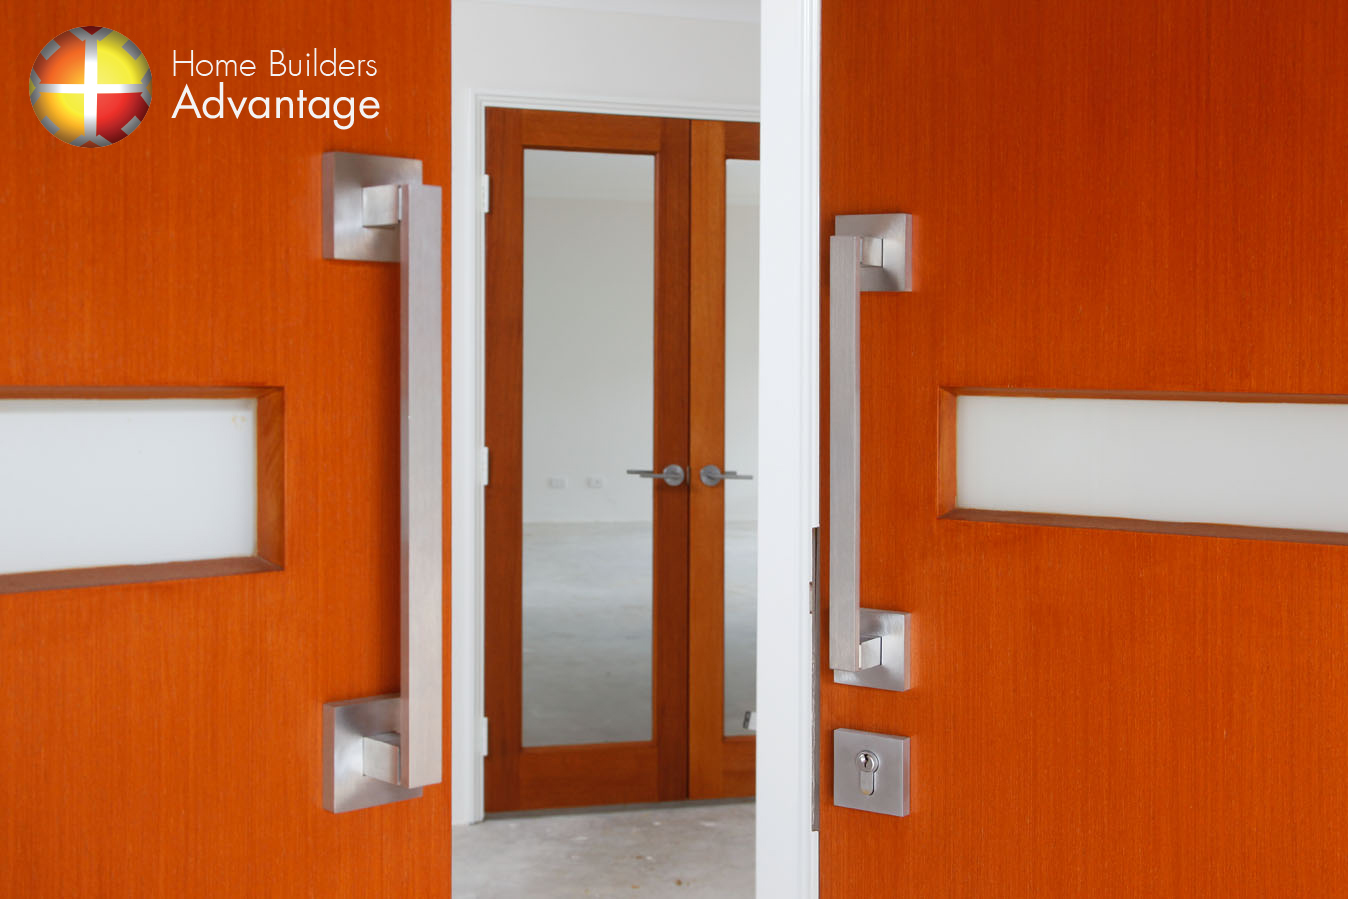 timber-front-entry-doors-pmad-104-with-brushed-aluminium-pull-handle